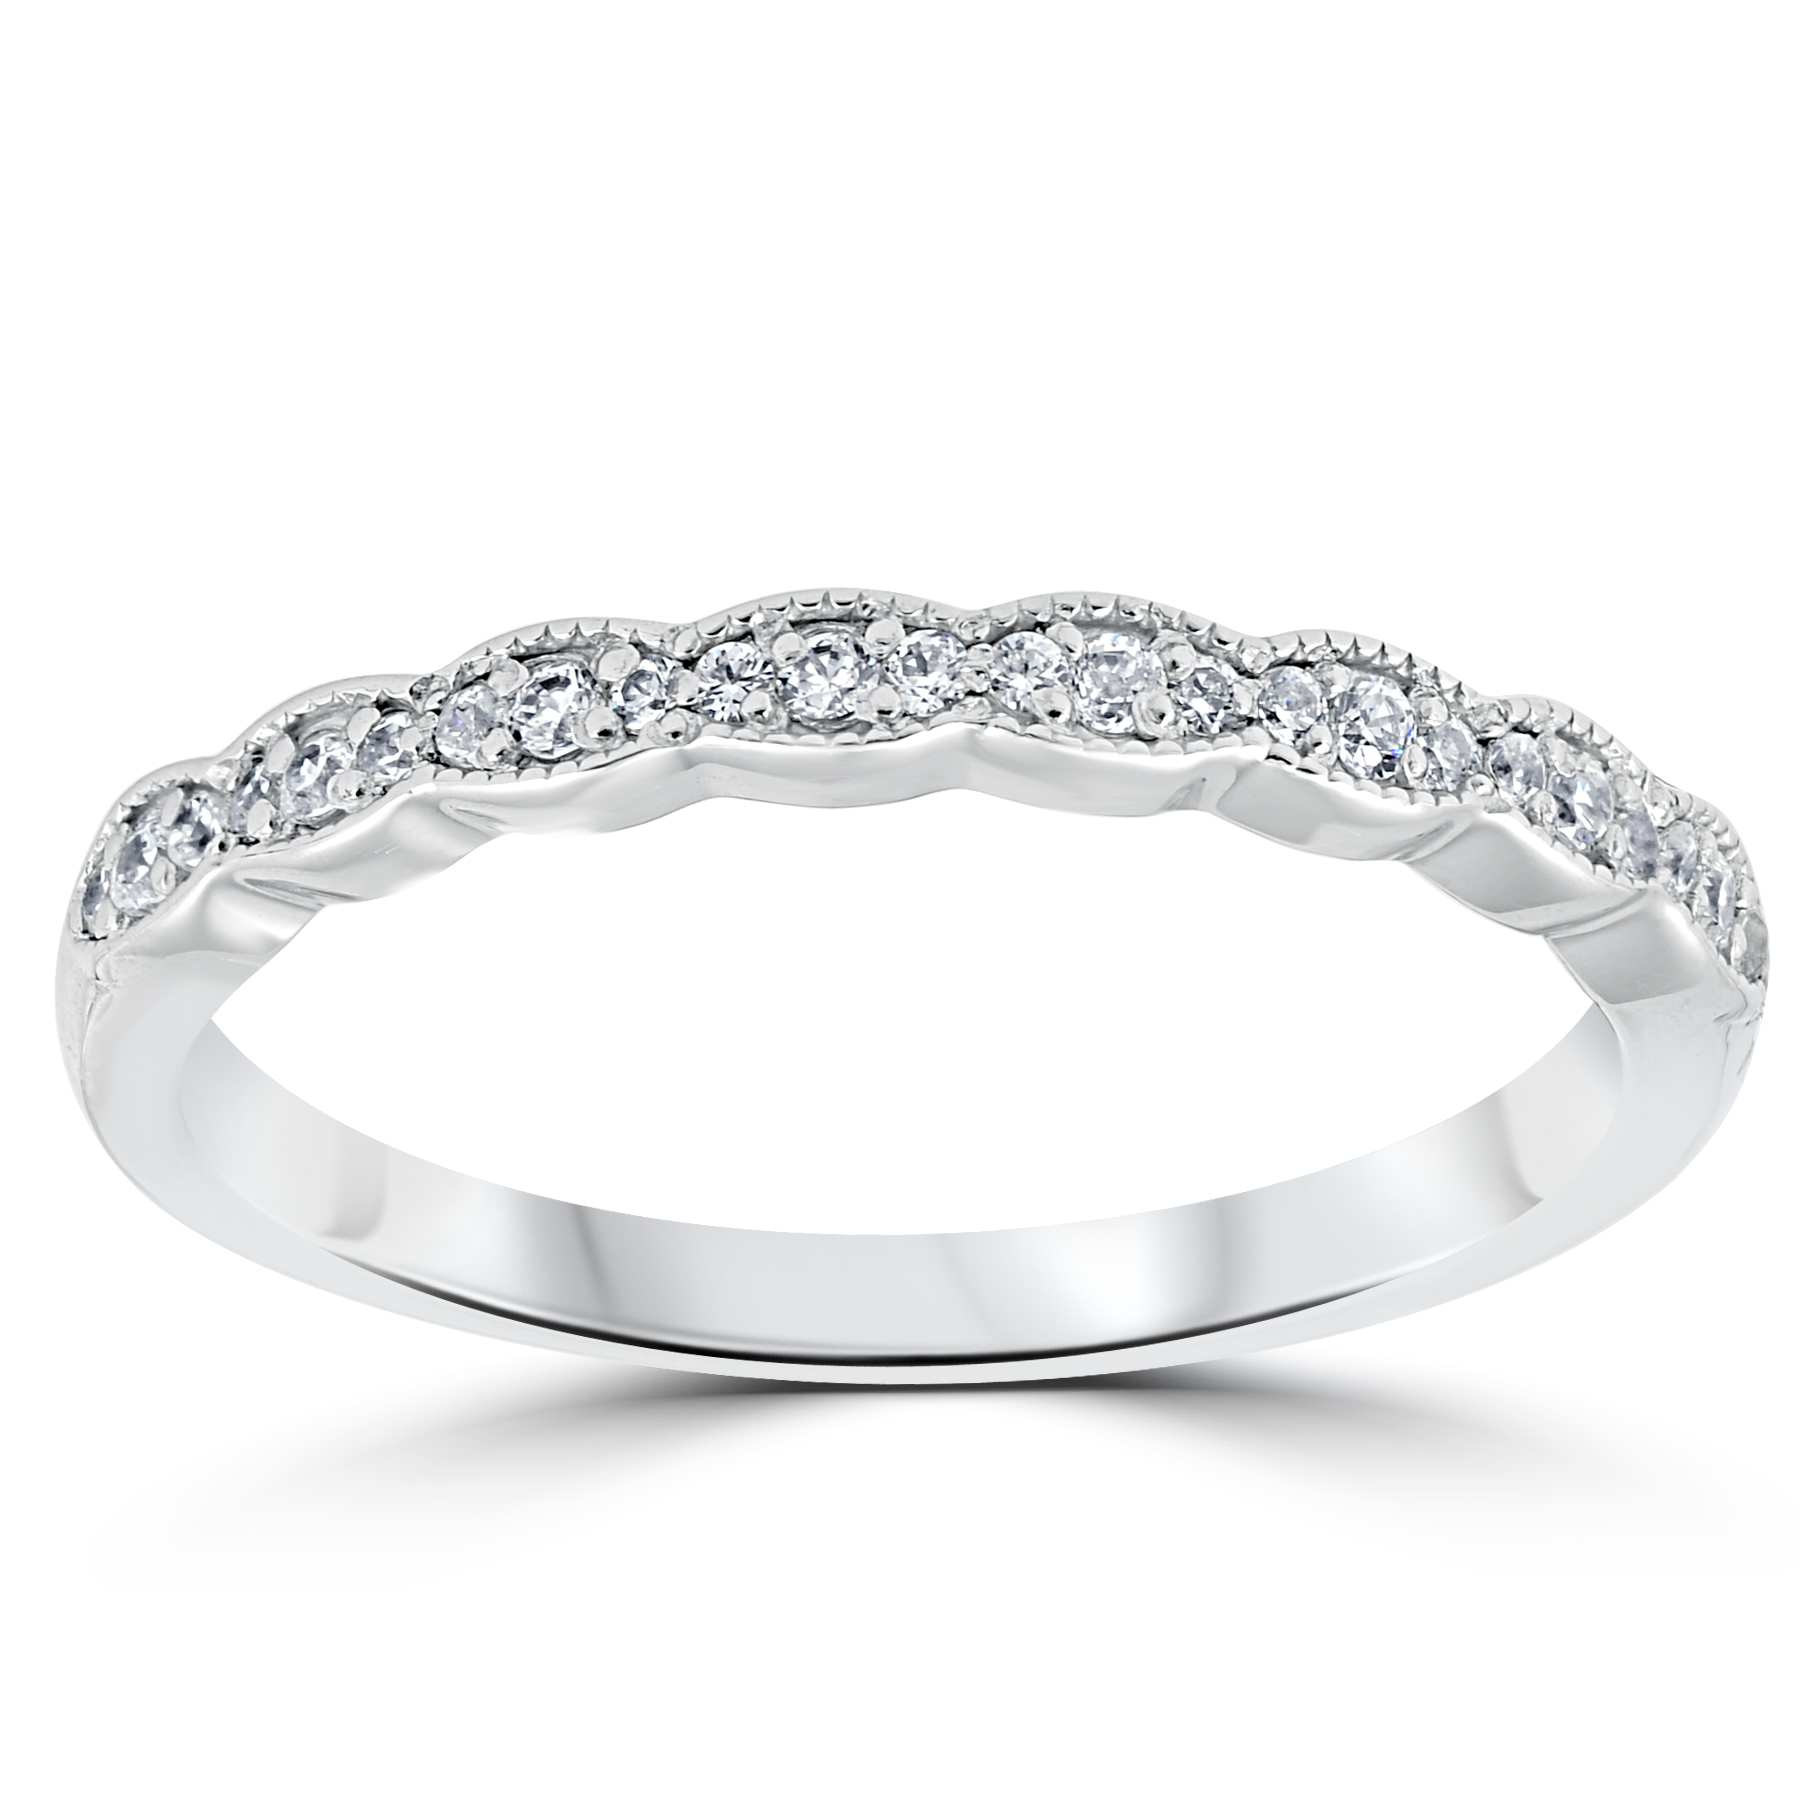 1/5 cttw Diamond Stackable Womens Wedding Ring 14k White ...